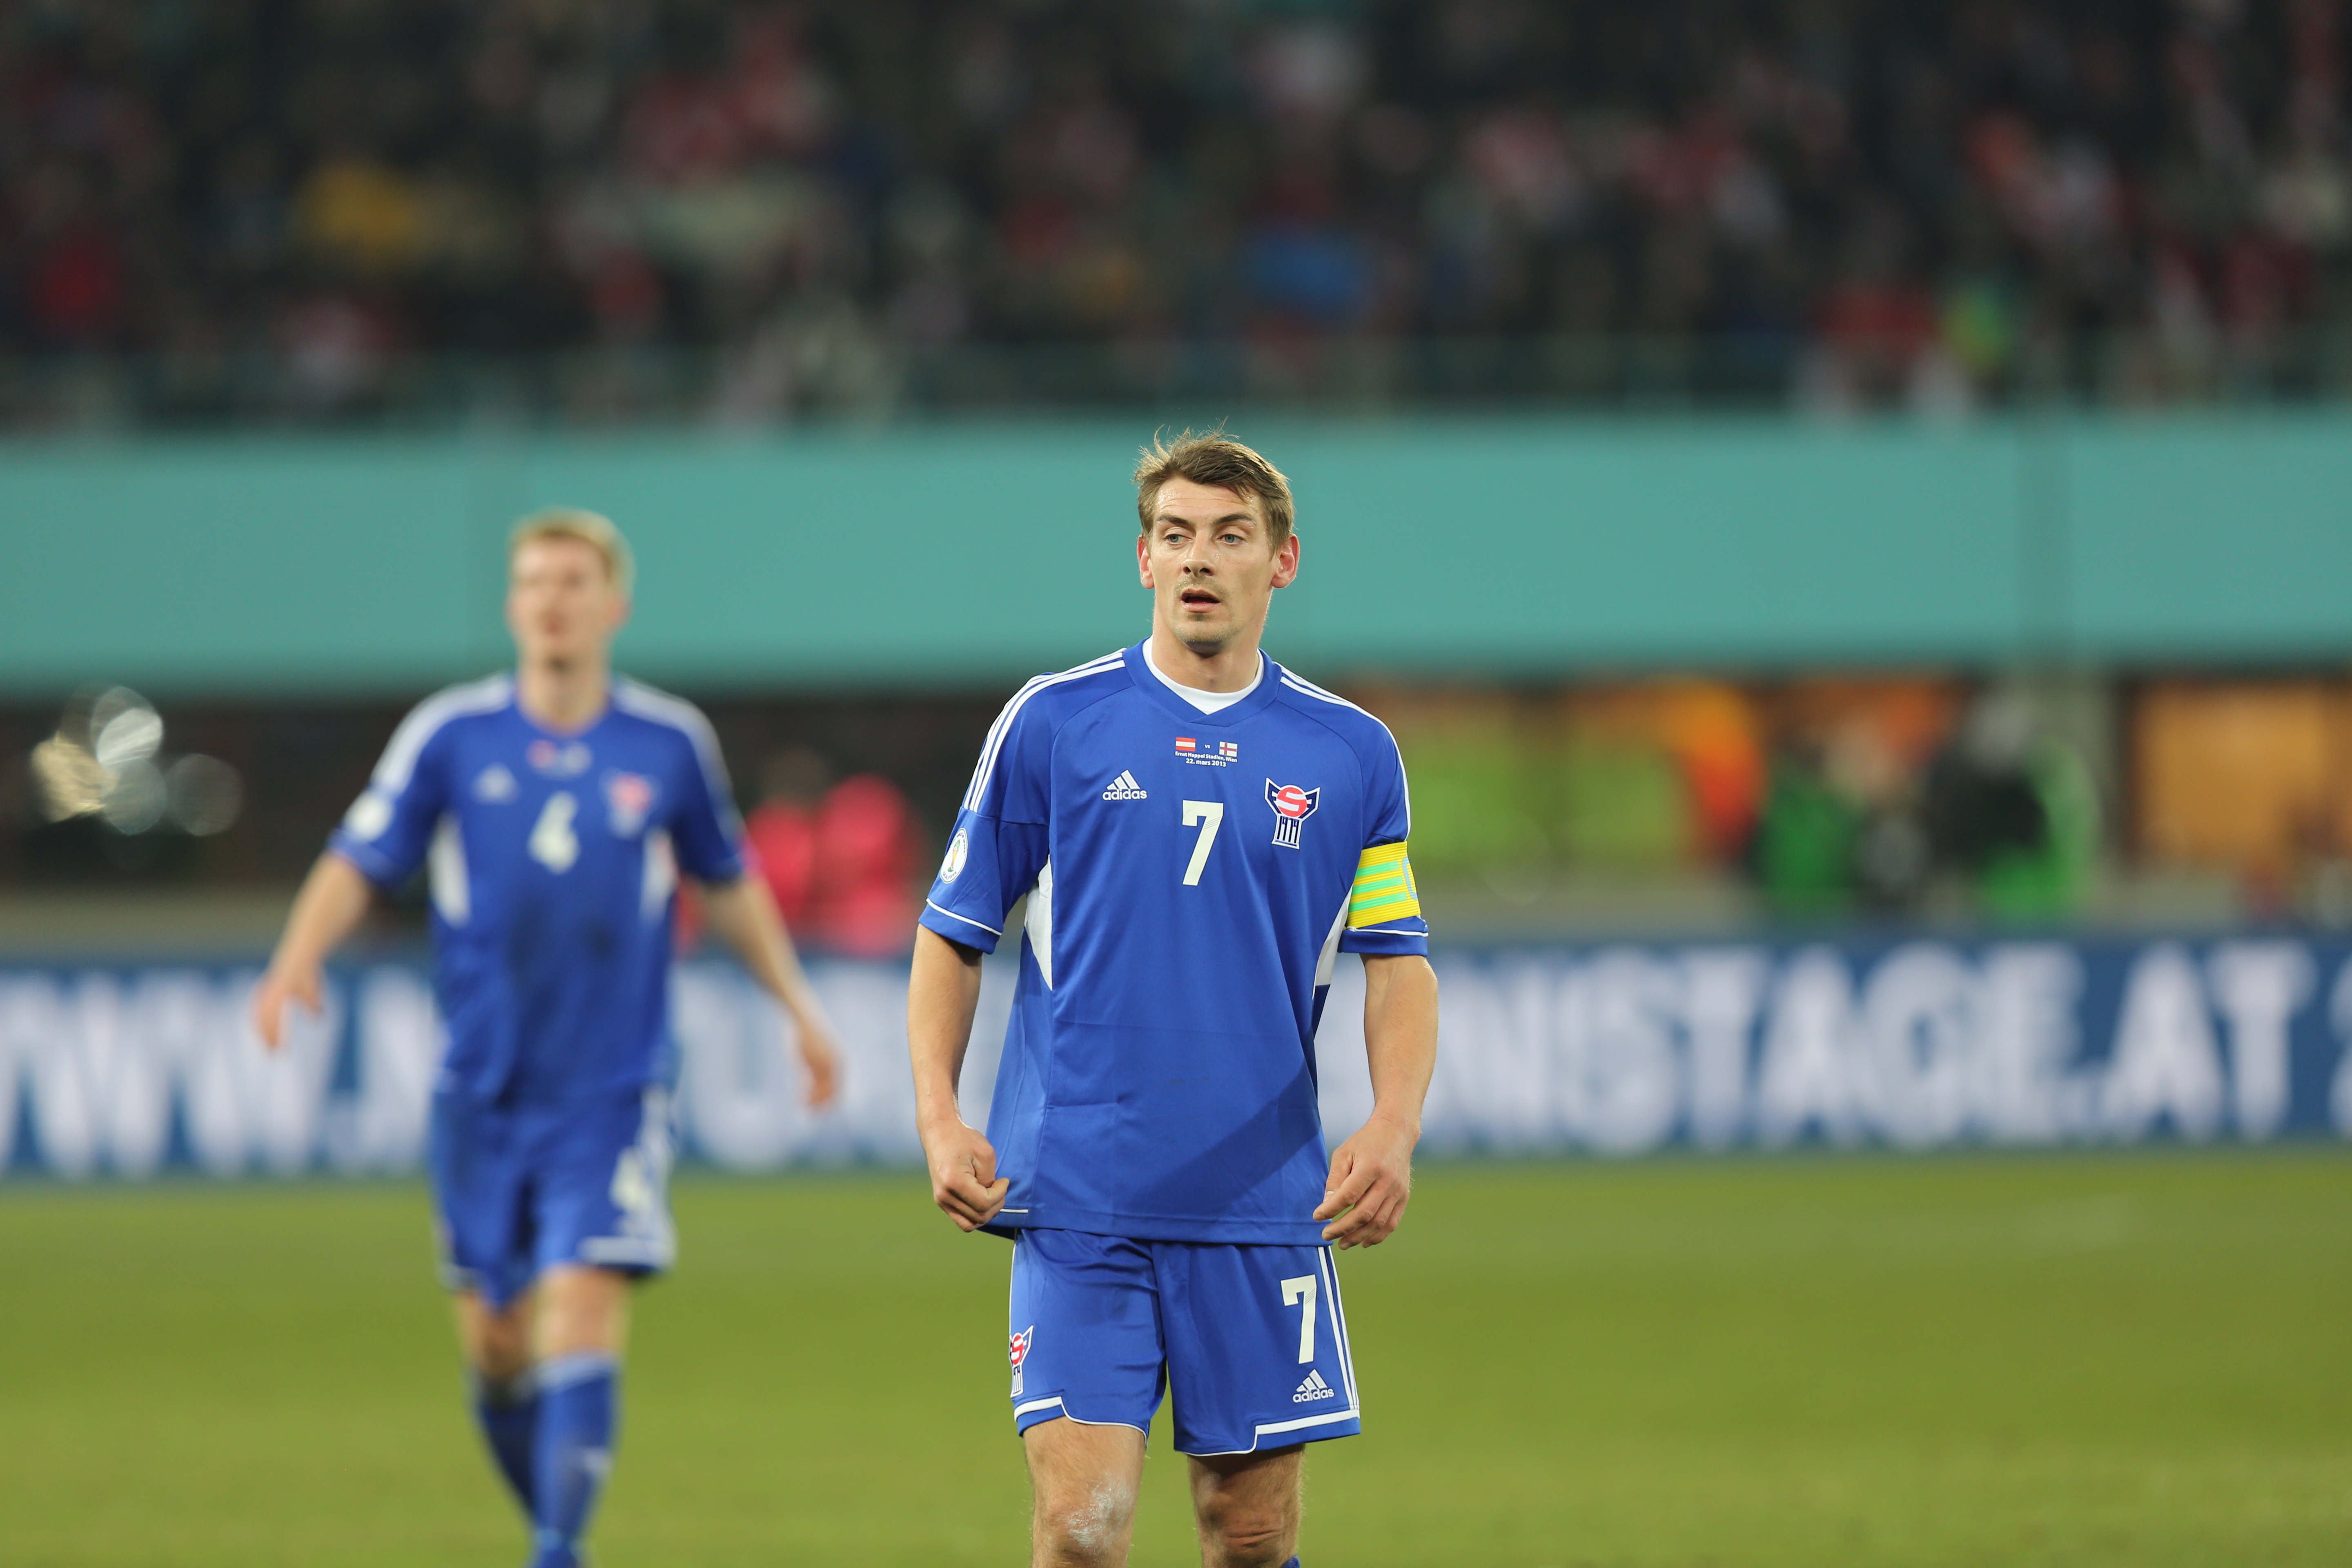 http://upload.wikimedia.org/wikipedia/commons/b/b2/FIFA_WC-qualification_2014_-_Austria_vs_Faroe_Islands_2013-03-22_-_Fr%C3%B3%C3%B0i_Benjaminsen_03.JPG